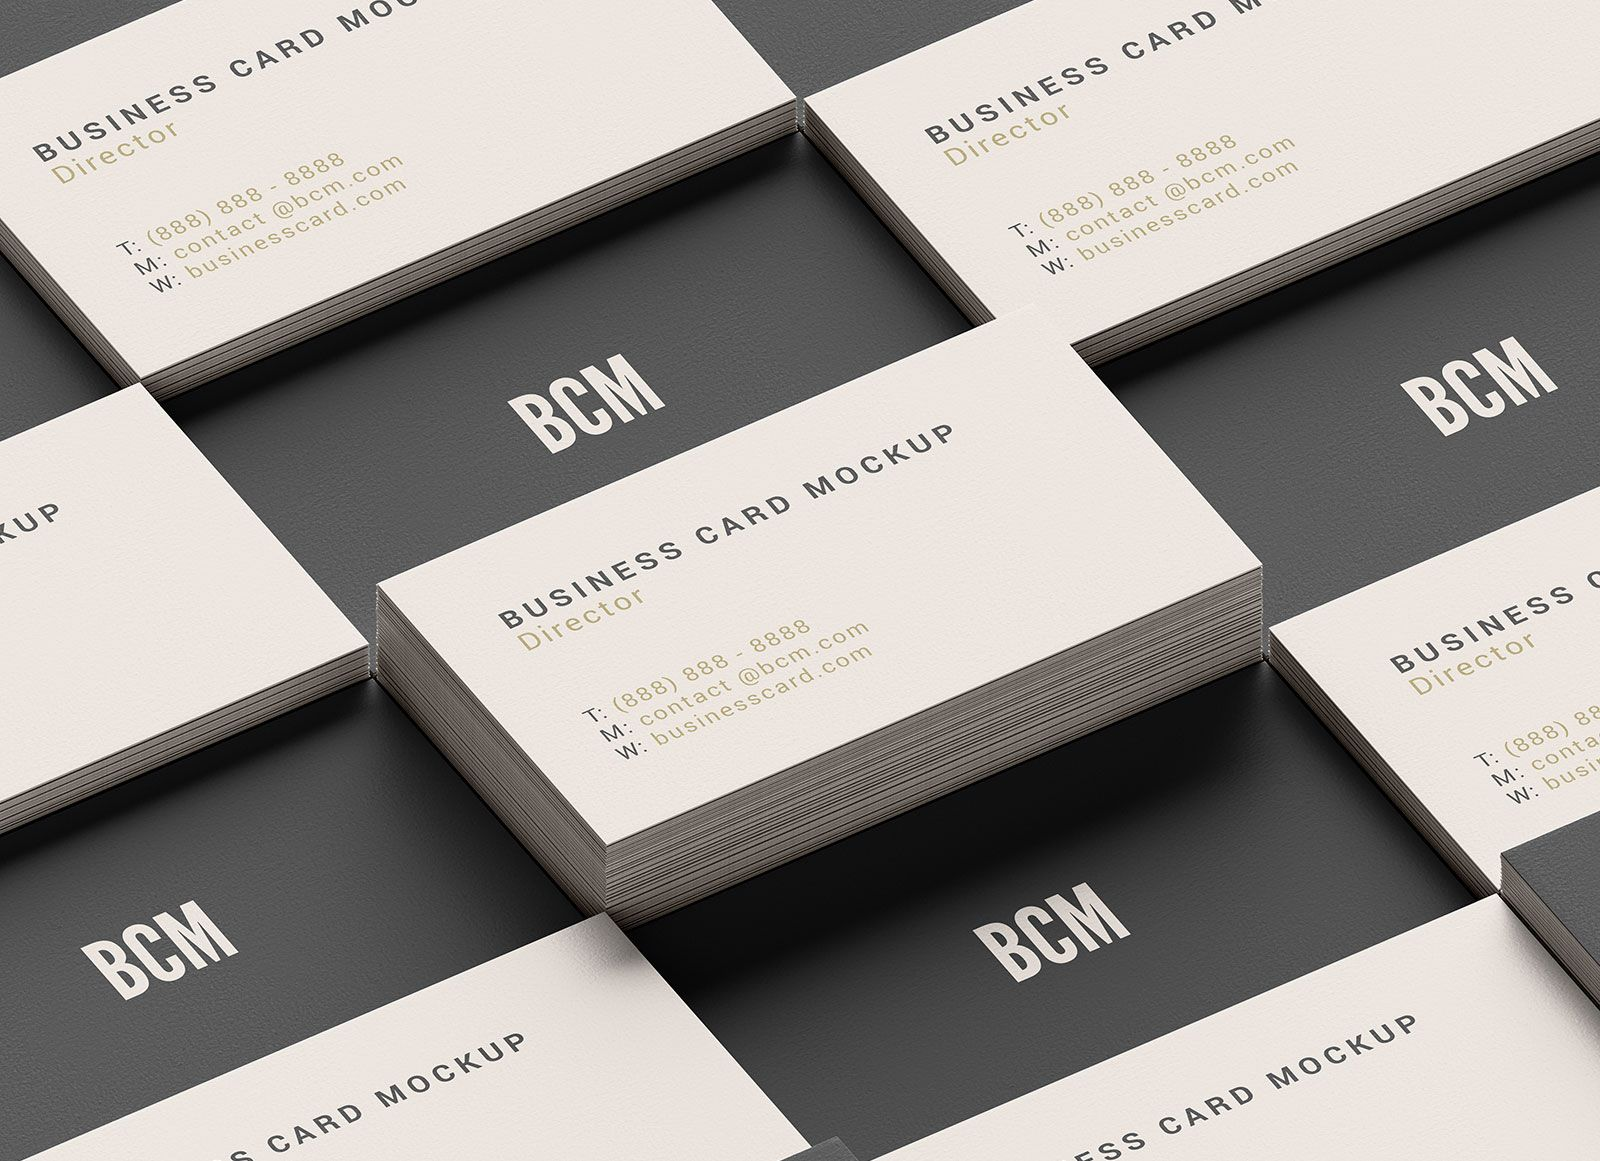 Free Grid Style Business Card Mockup Psd In 2021 Business Cards Mockup Psd Business Card Mock Up Free Business Card Mockup